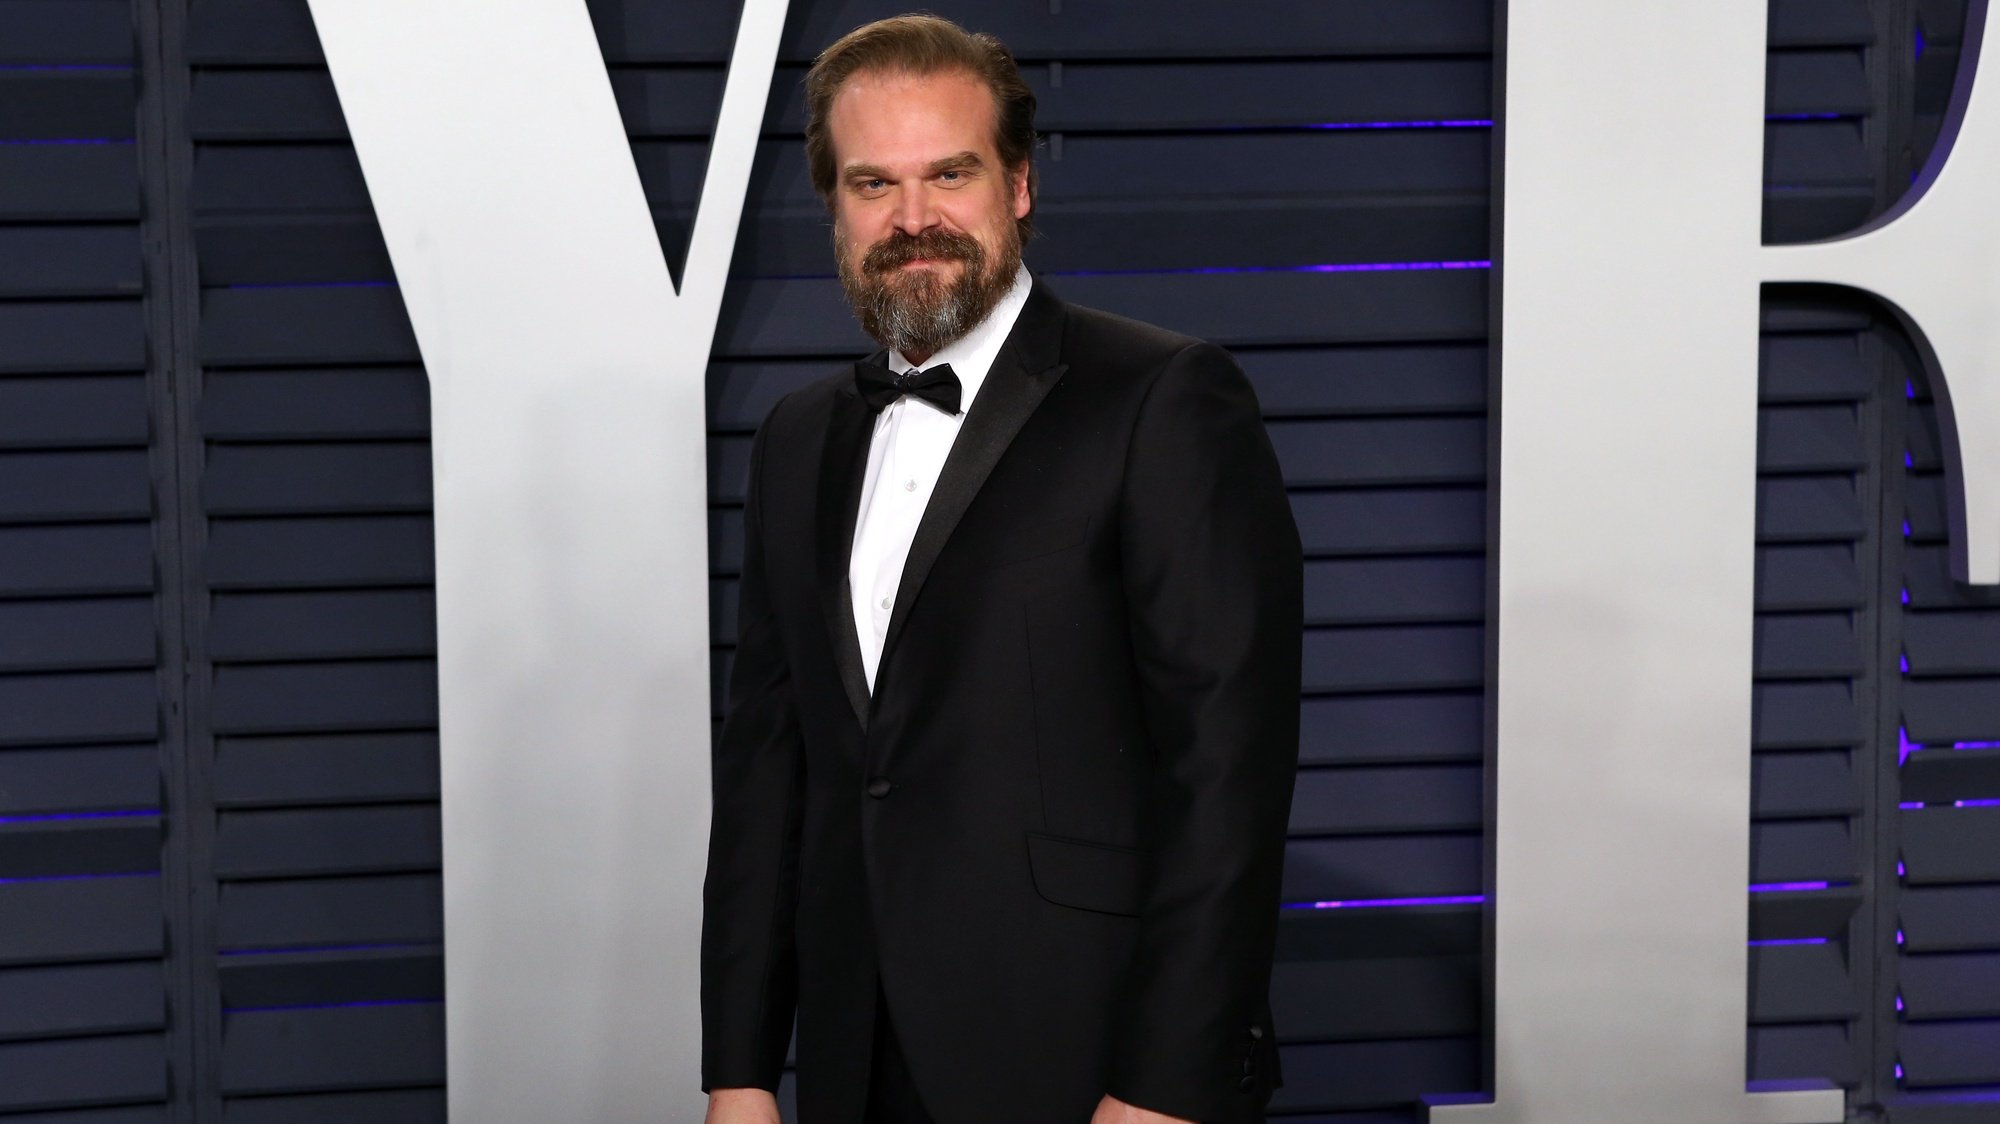 epa07396849 David Harbour poses at the 2019 Vanity Fair Oscar Party following the 91st annual Academy Awards ceremony, in Beverly Hills, California, USA, 24 February 2019. The Oscars are presented for outstanding individual or collective efforts in 24 categories in filmmaking. The Oscars are presented for outstanding individual or collective efforts in 24 categories in filmmaking.  EPA/NINA PROMMER